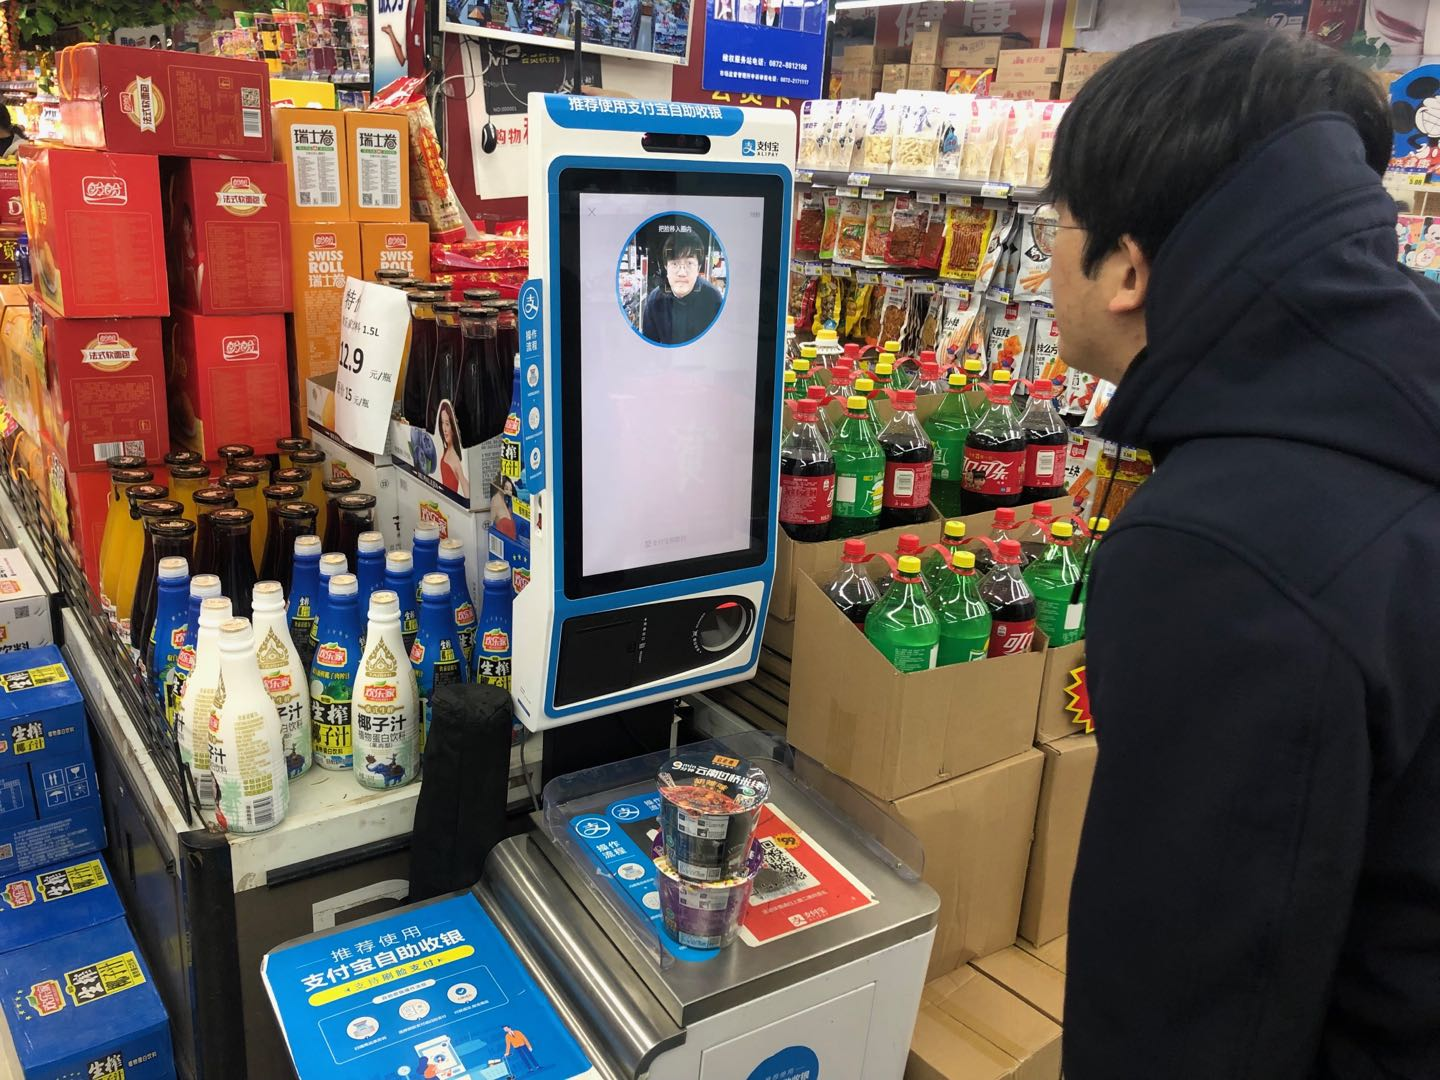 AliPay Adds Image Retouching Feature to Facial Checkout Tablet